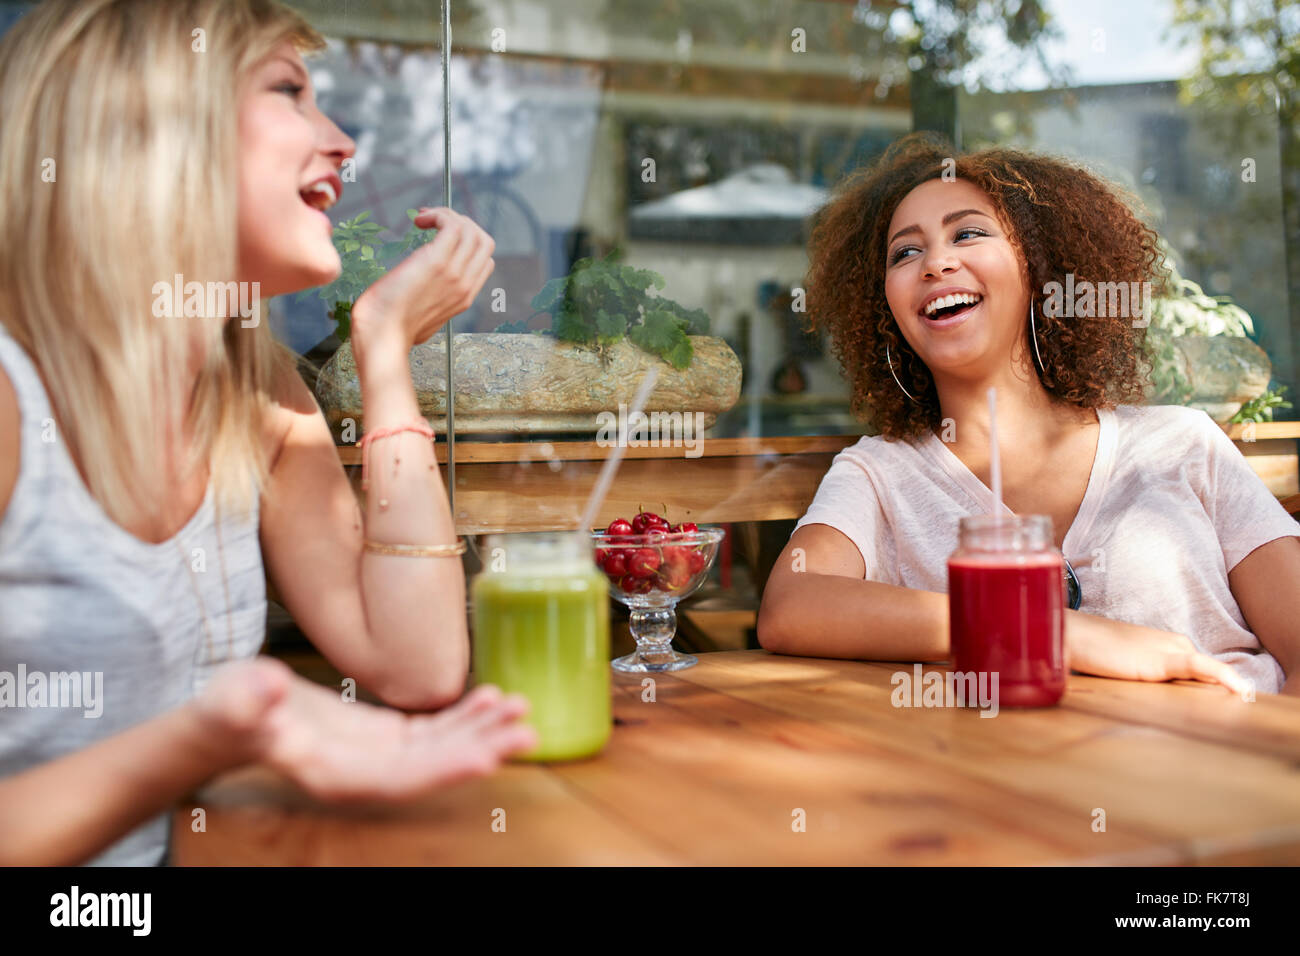 Two women gossiping and smiling at a restaurant. Young friends sitting at outdoors cafe having fun. - Stock Image